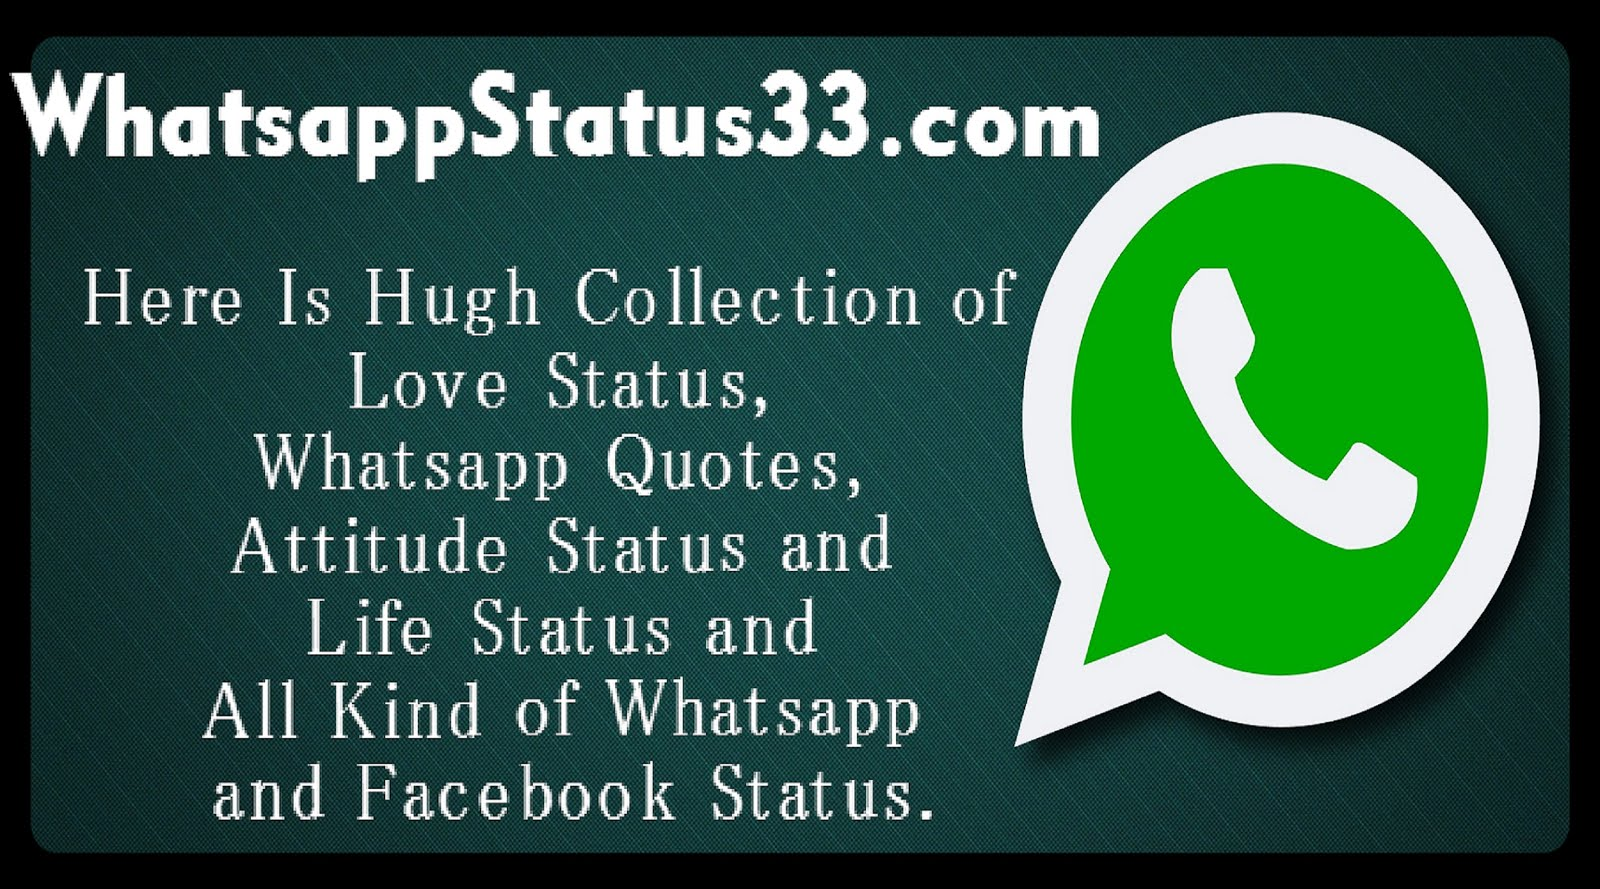 Love Status For Whatsapp In One Line : Attitude Status Love Quotes Life Quotes Whatsapp Dp Short Status Funny ...